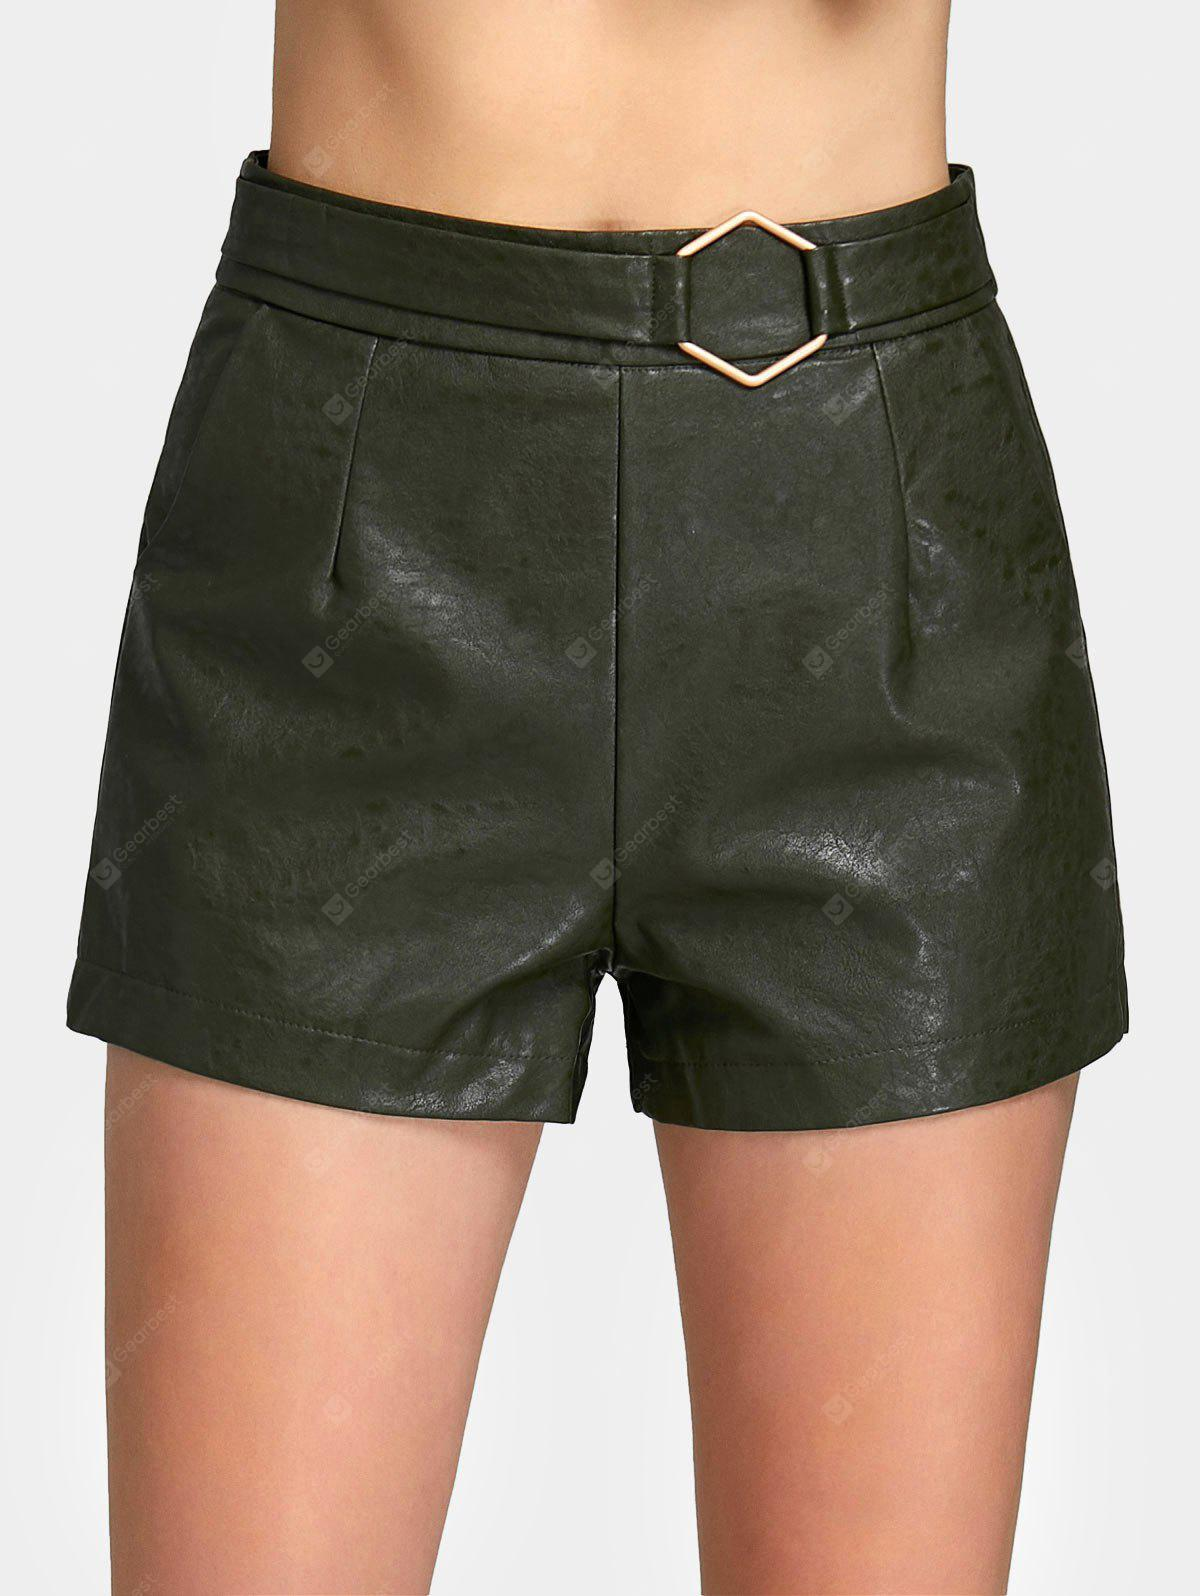 ARMY GREEN XL Metal Geometry PU Leather High Waist Shorts